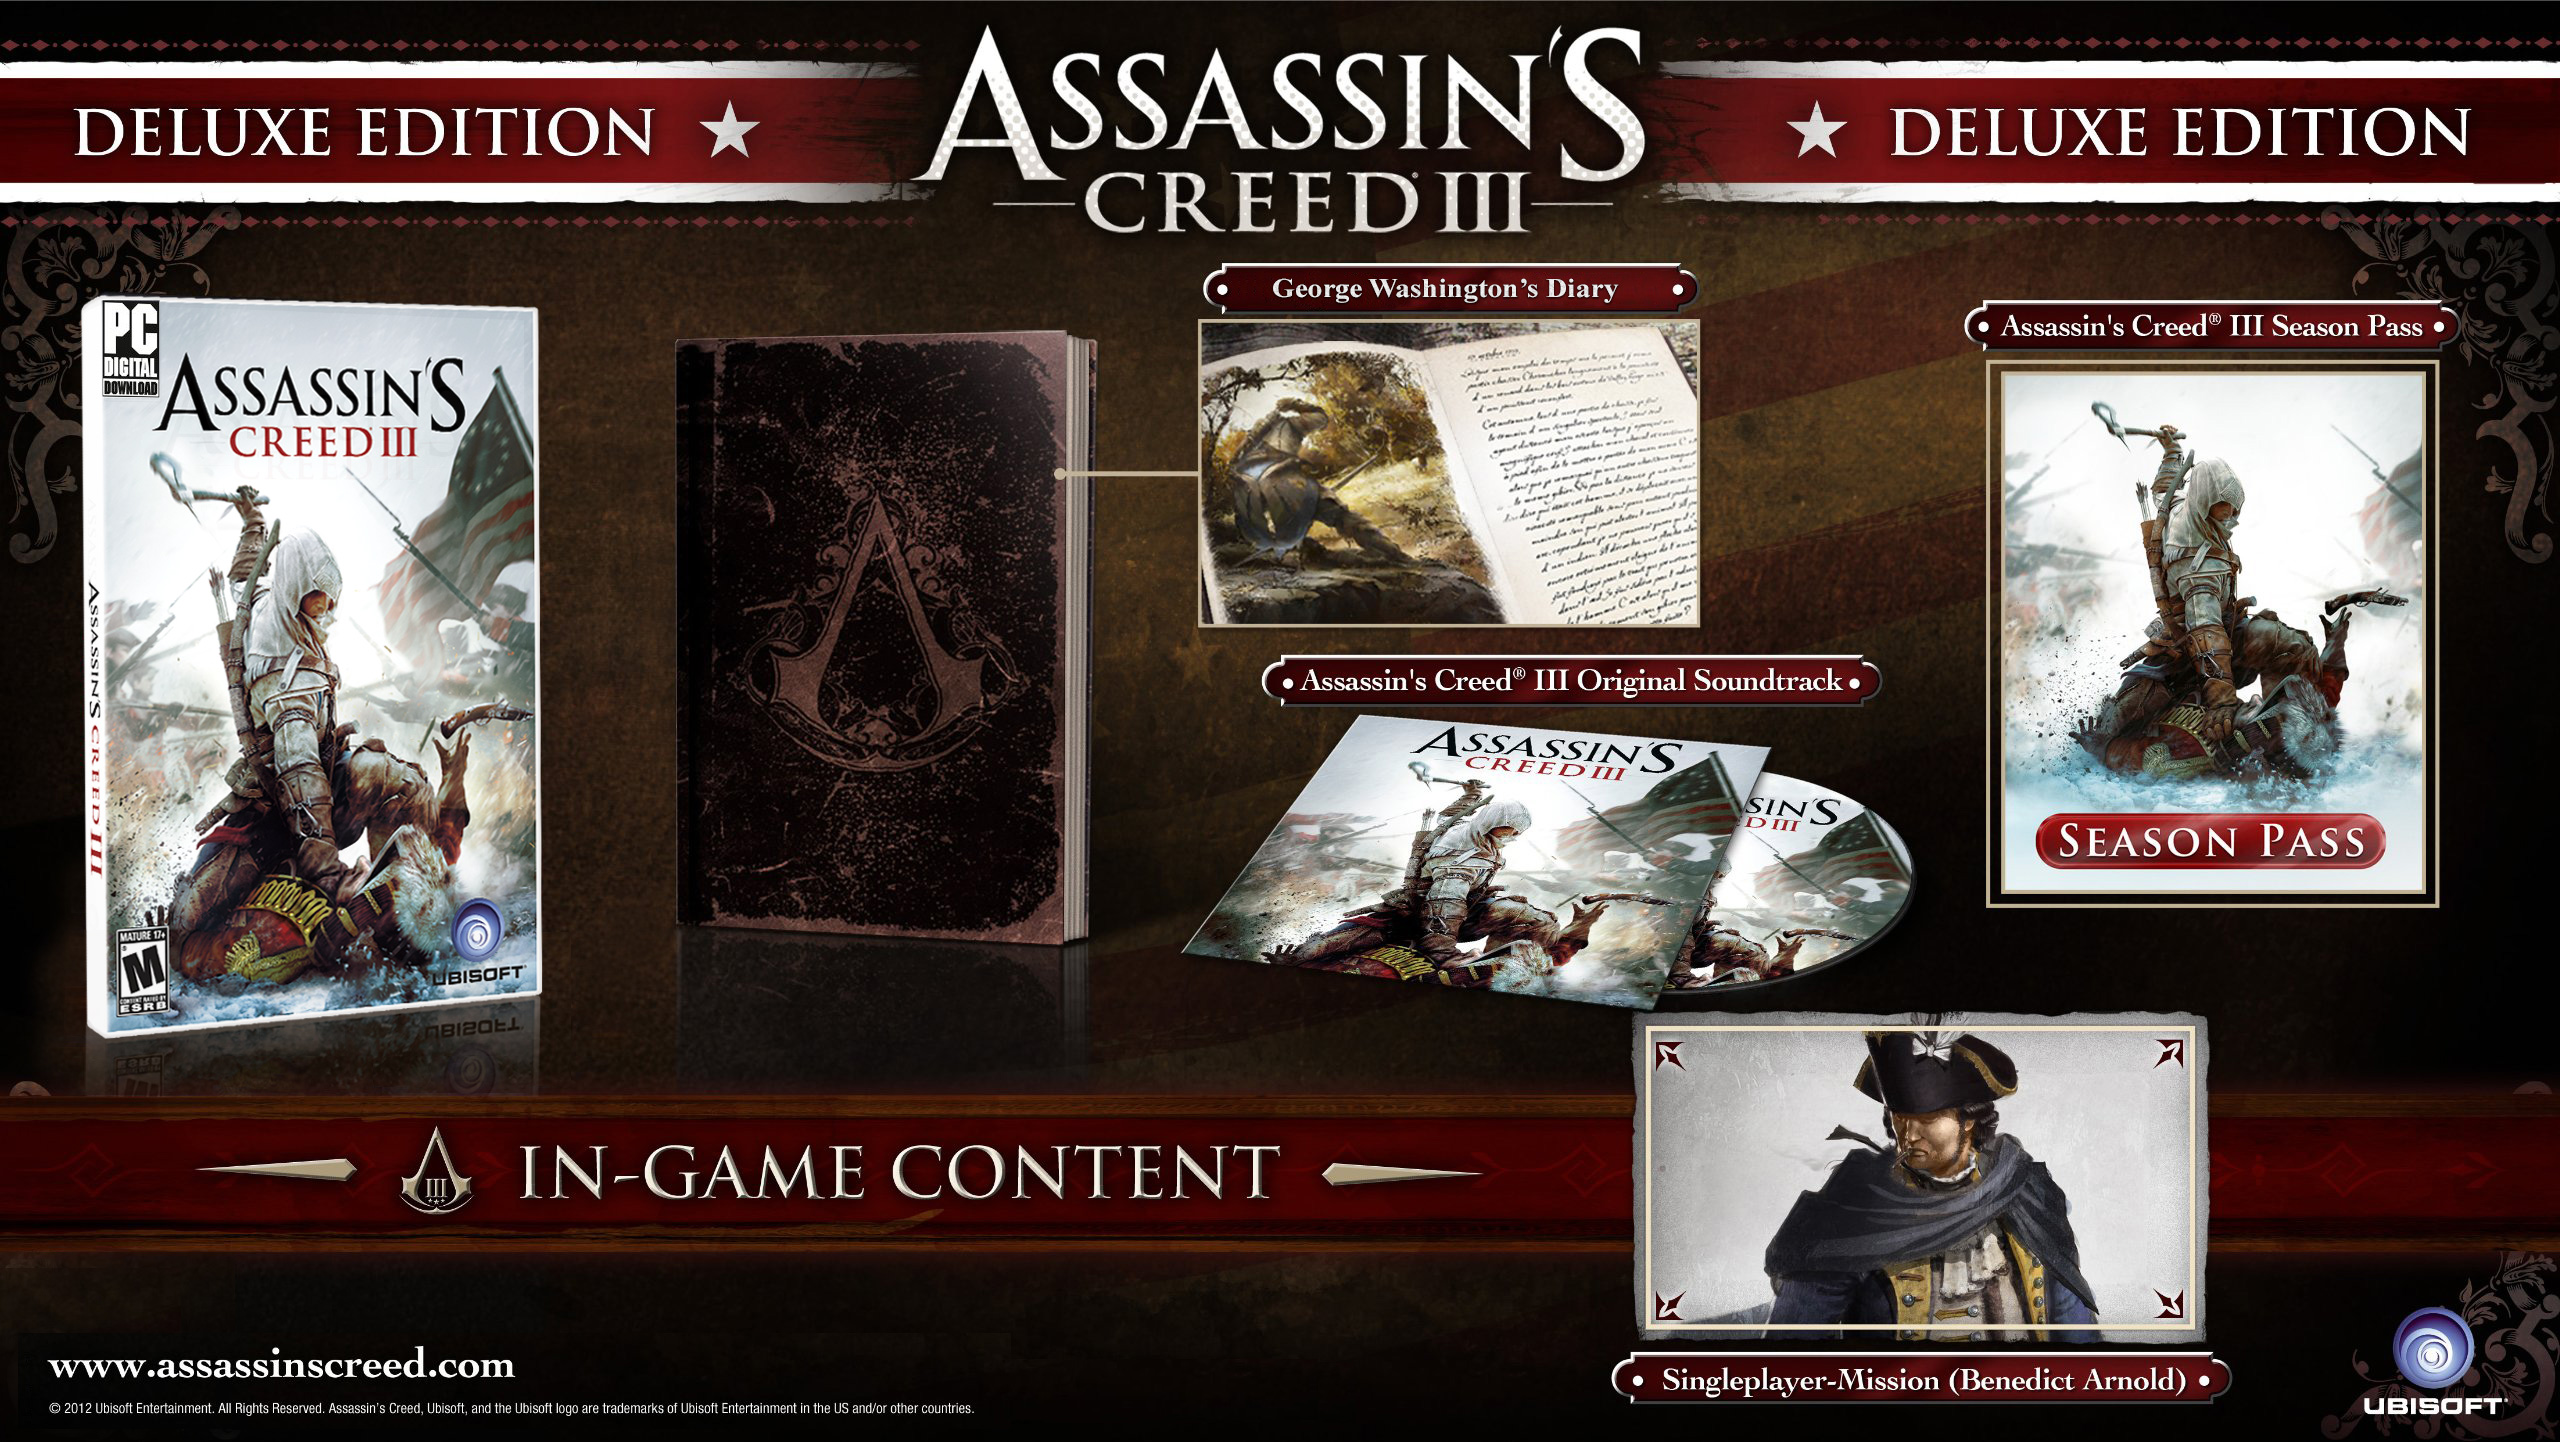 Assassin's creed iii deluxe edition.